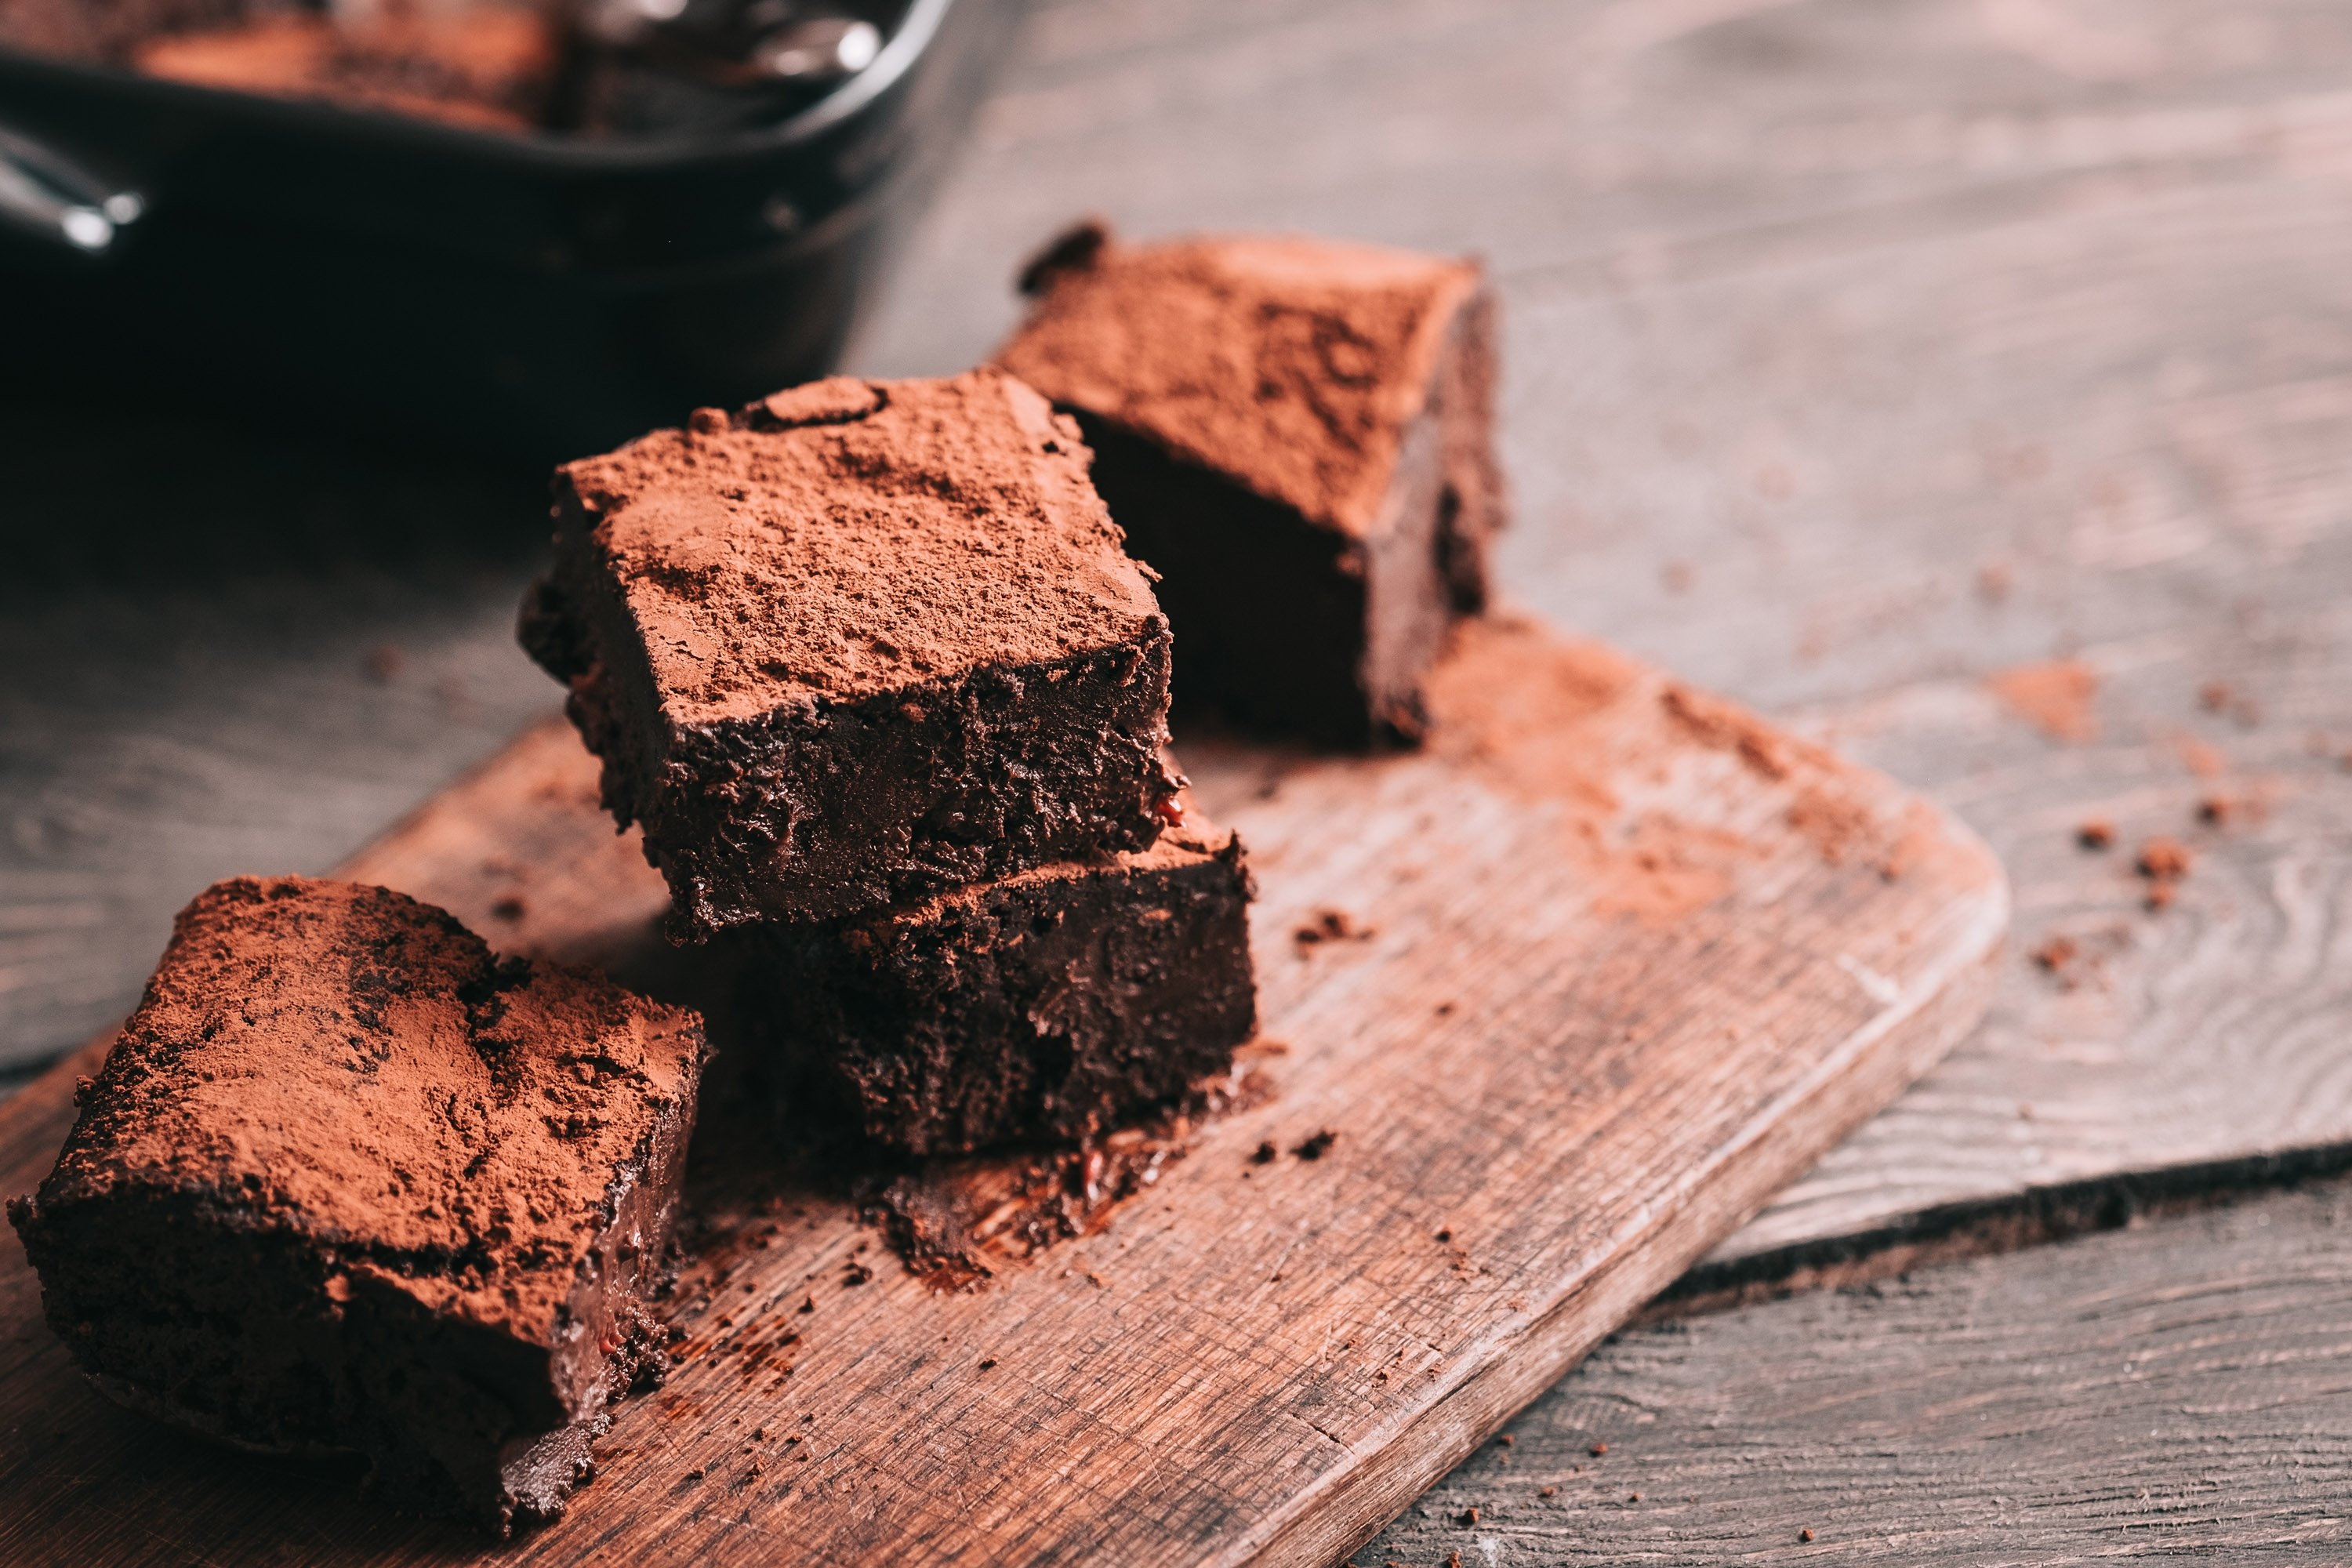 Dates give chocolate cake a moist and gooey texture. (Shutterstock Photo)